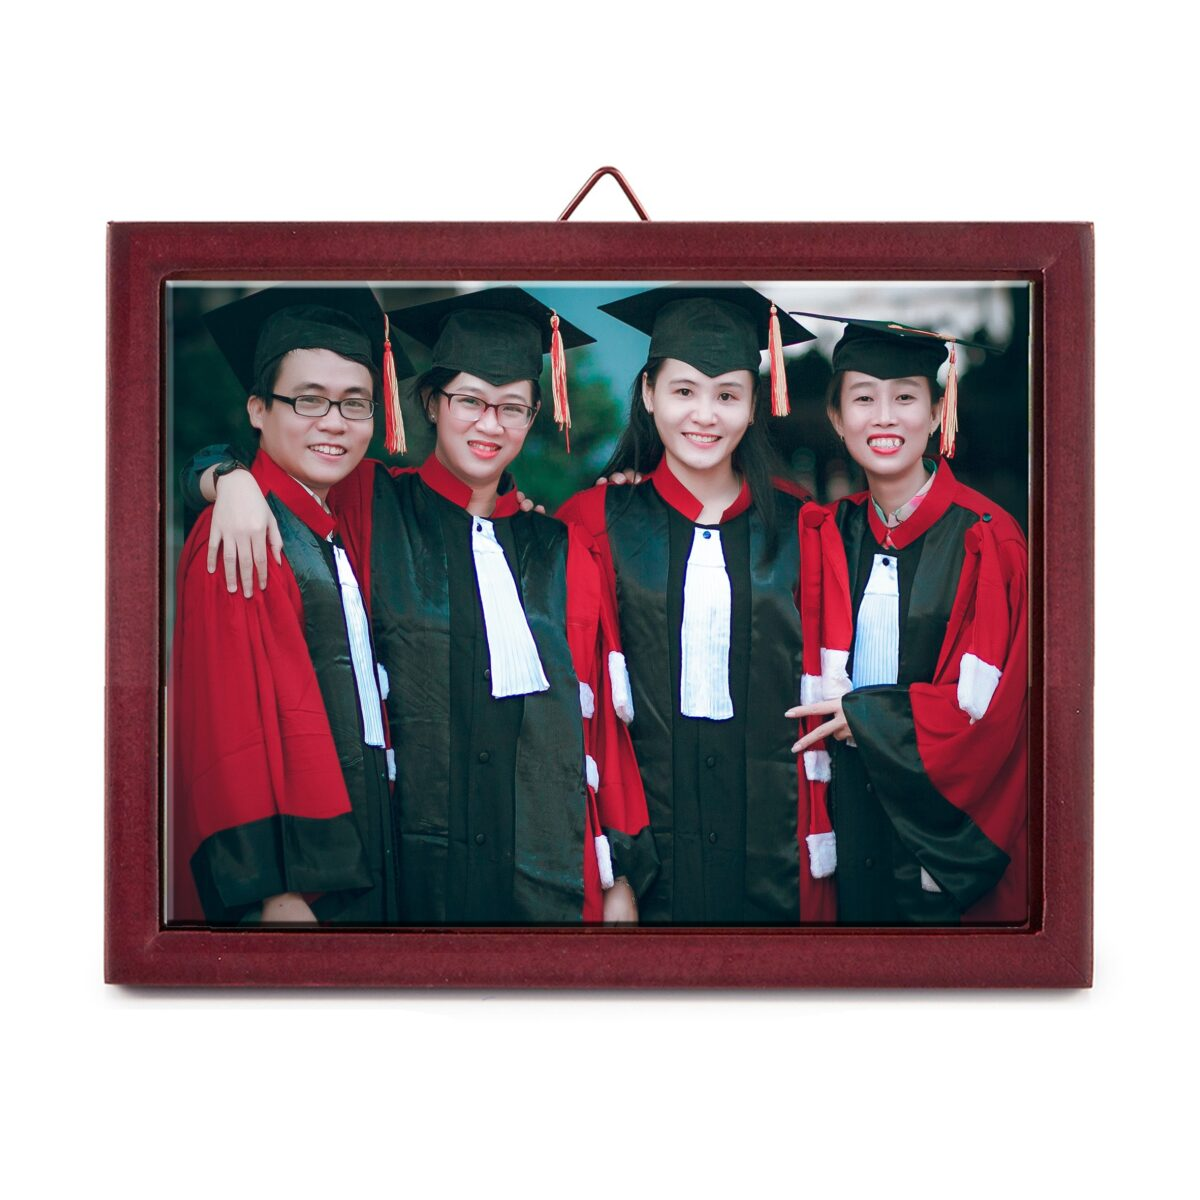 """8"""" x 6"""" Personalized Photo Printed Ceramic Tile (with Wooden Frame)"""